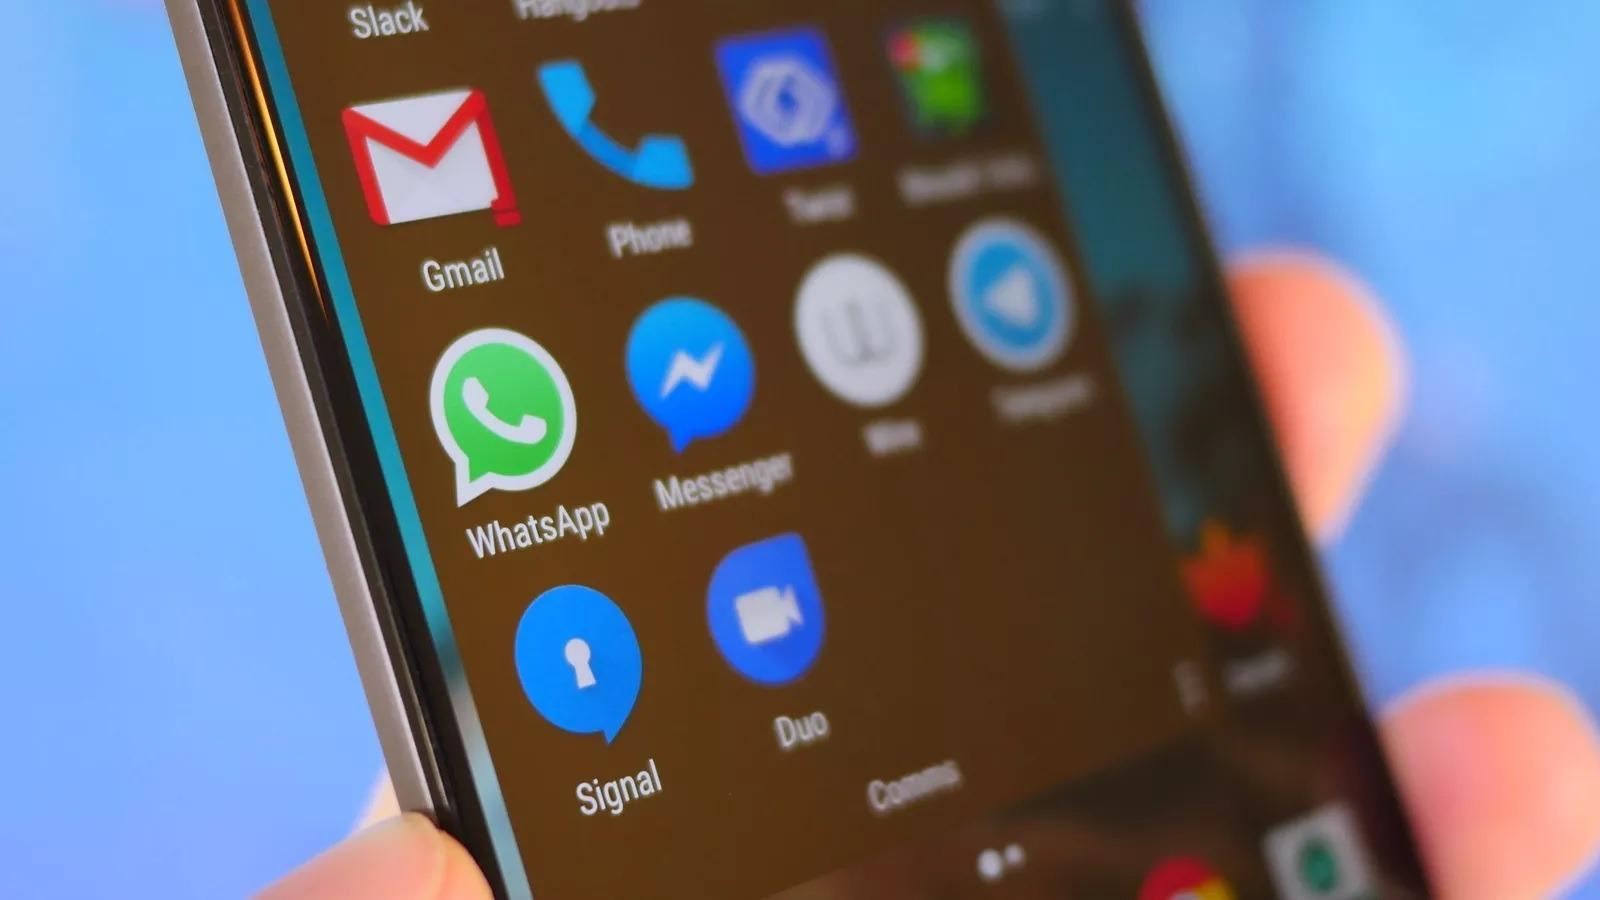 WhatsApp finally makes it easier to watch videos without leaving the app